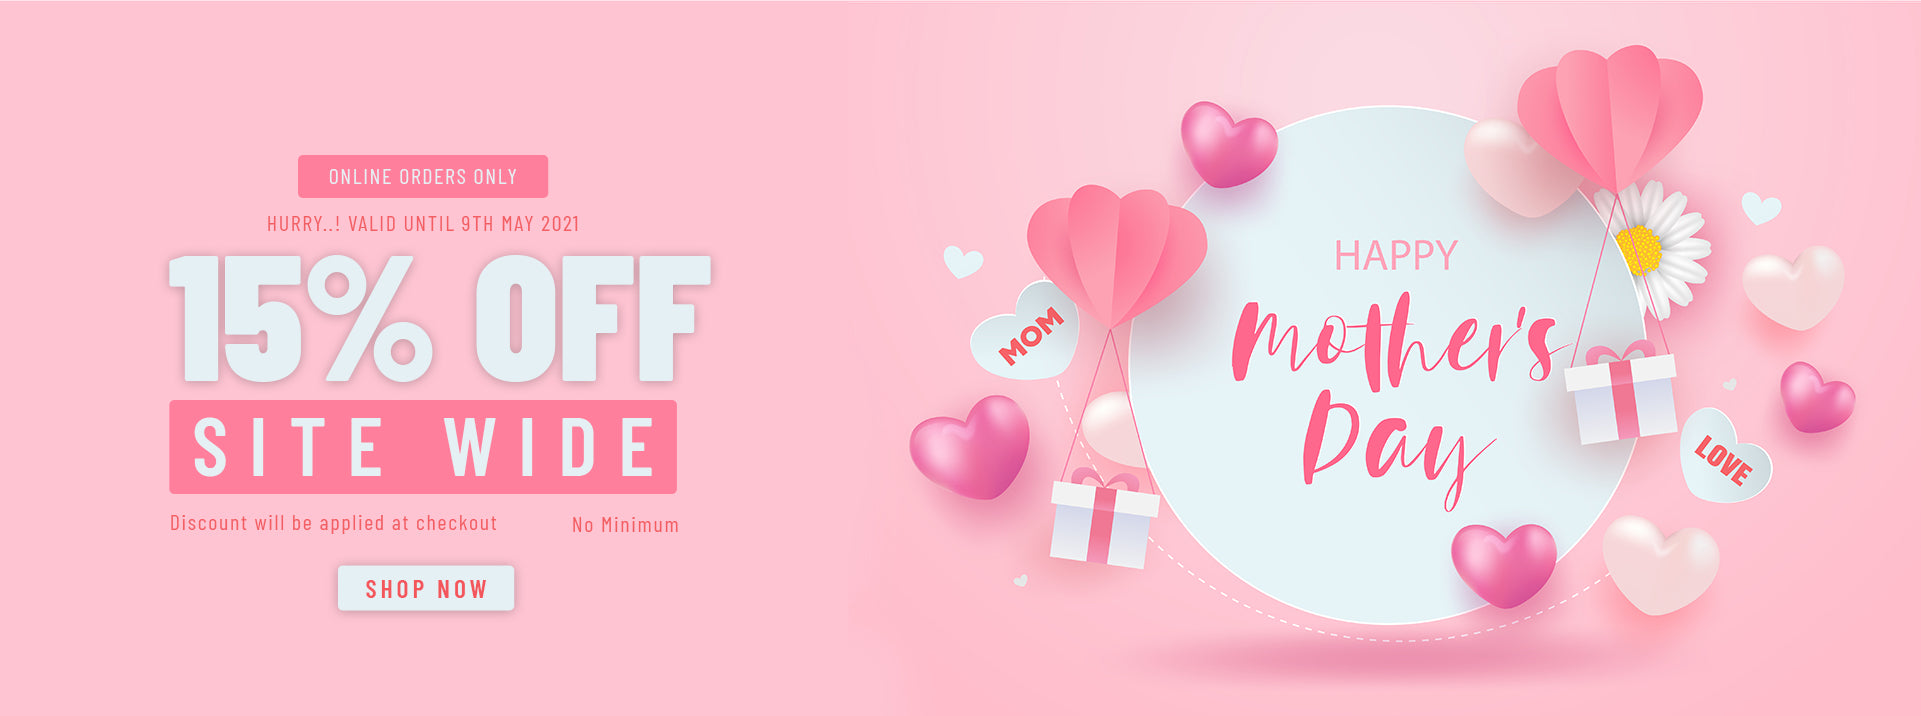 Mother Day - Promotion